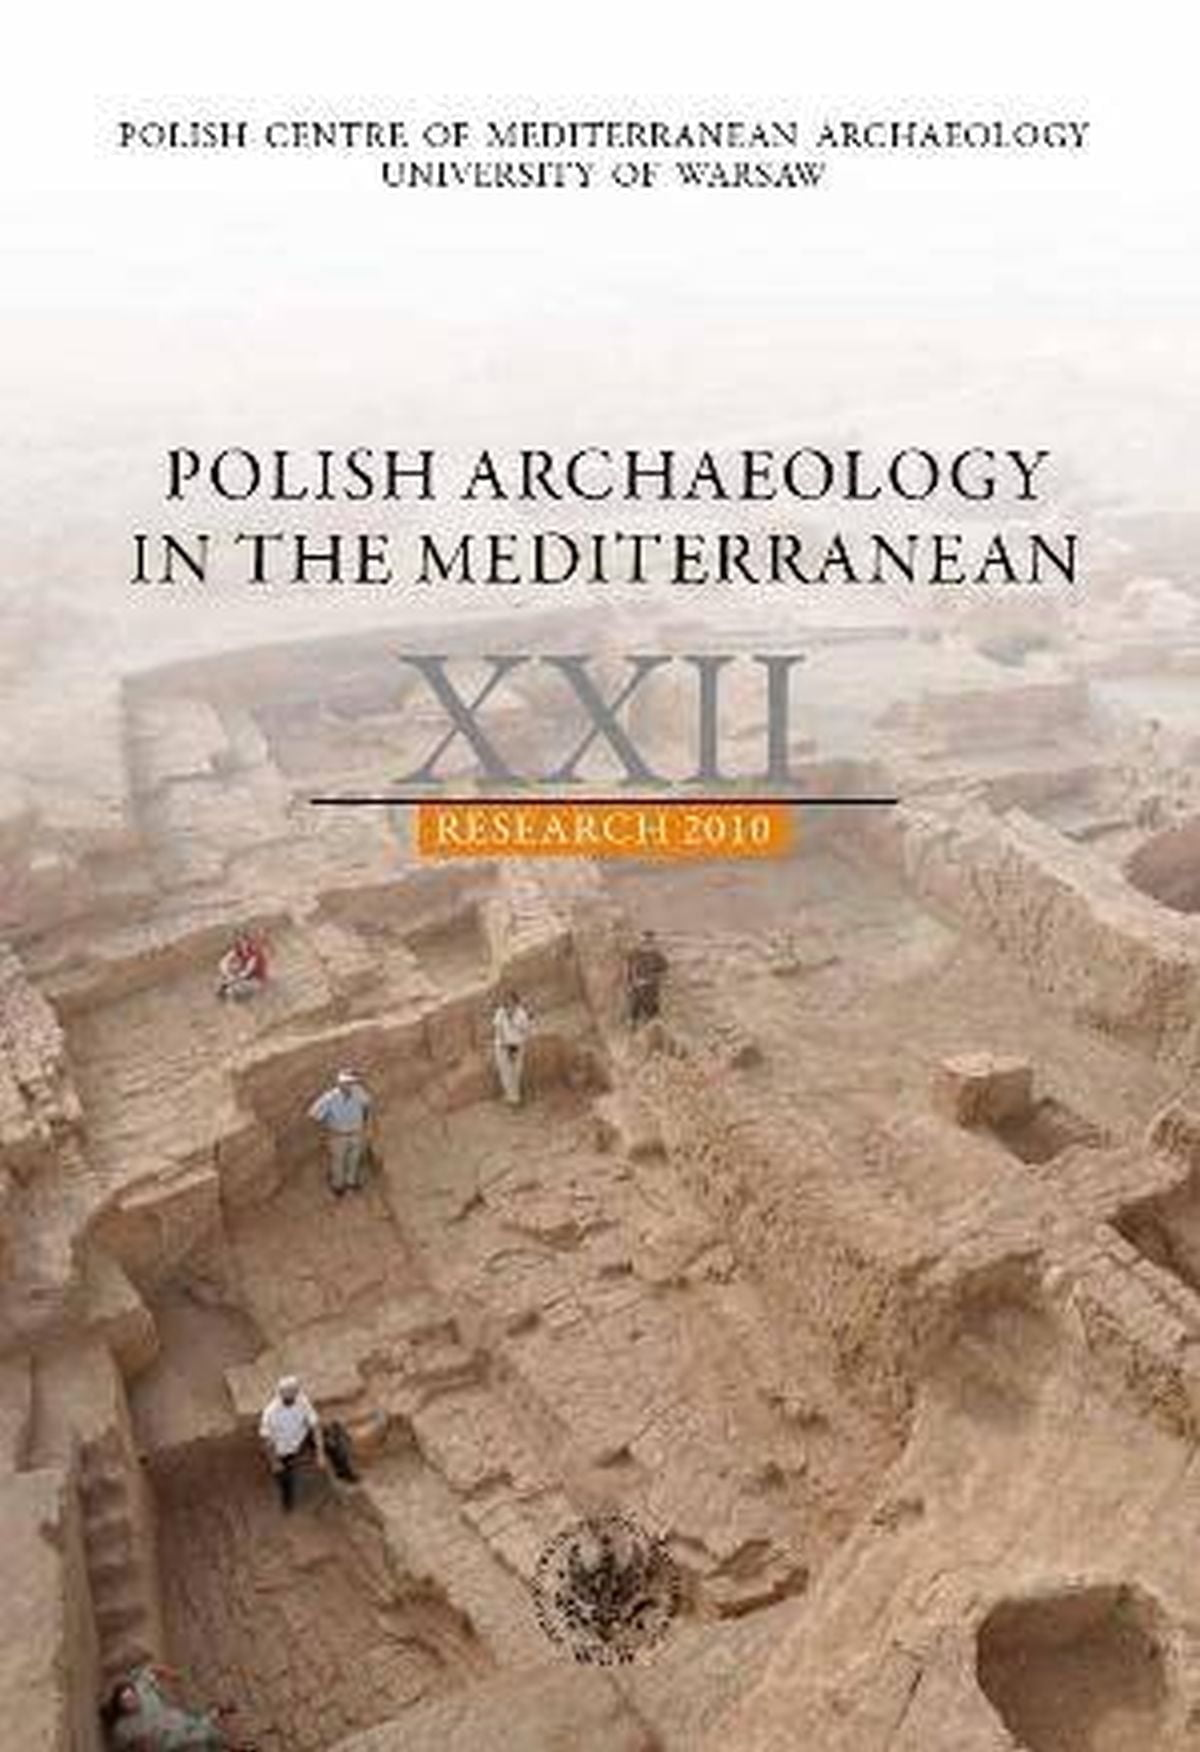 Polish Archaeology in the Mediterranean XXII. Research 2010